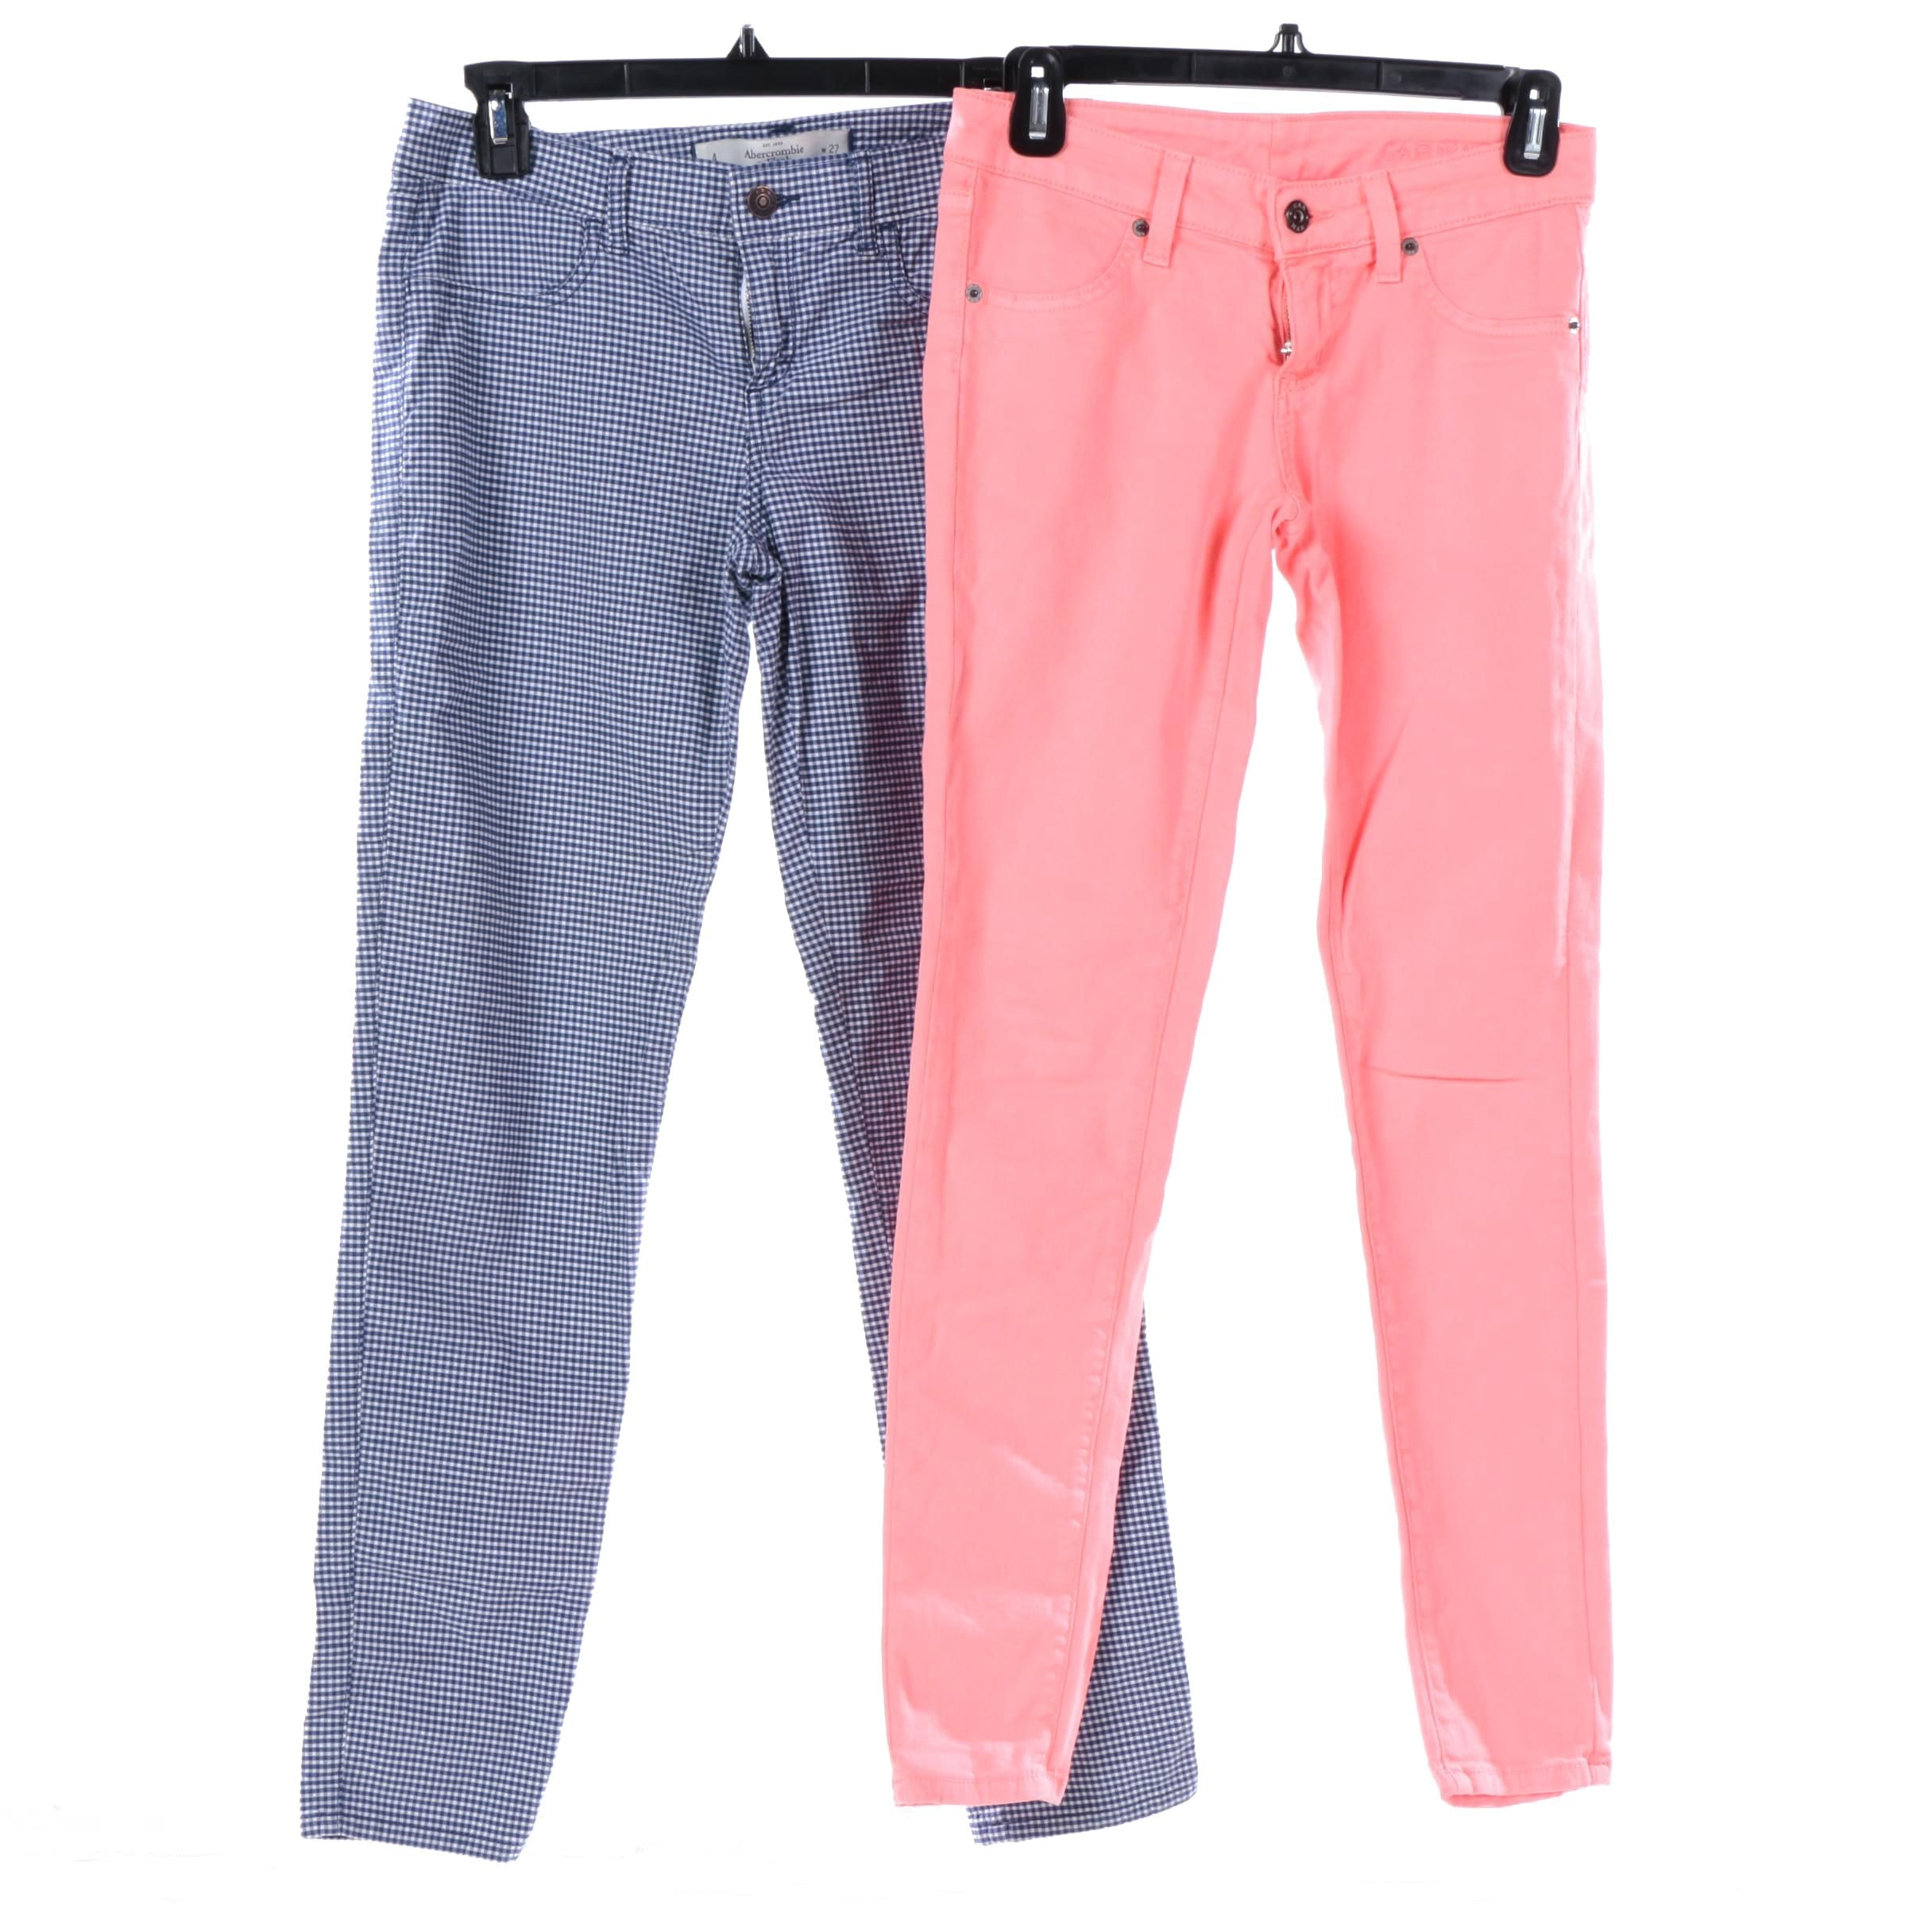 Women's Carmar Coral-Colored and Abercrombie & Fitch Gingham Pants